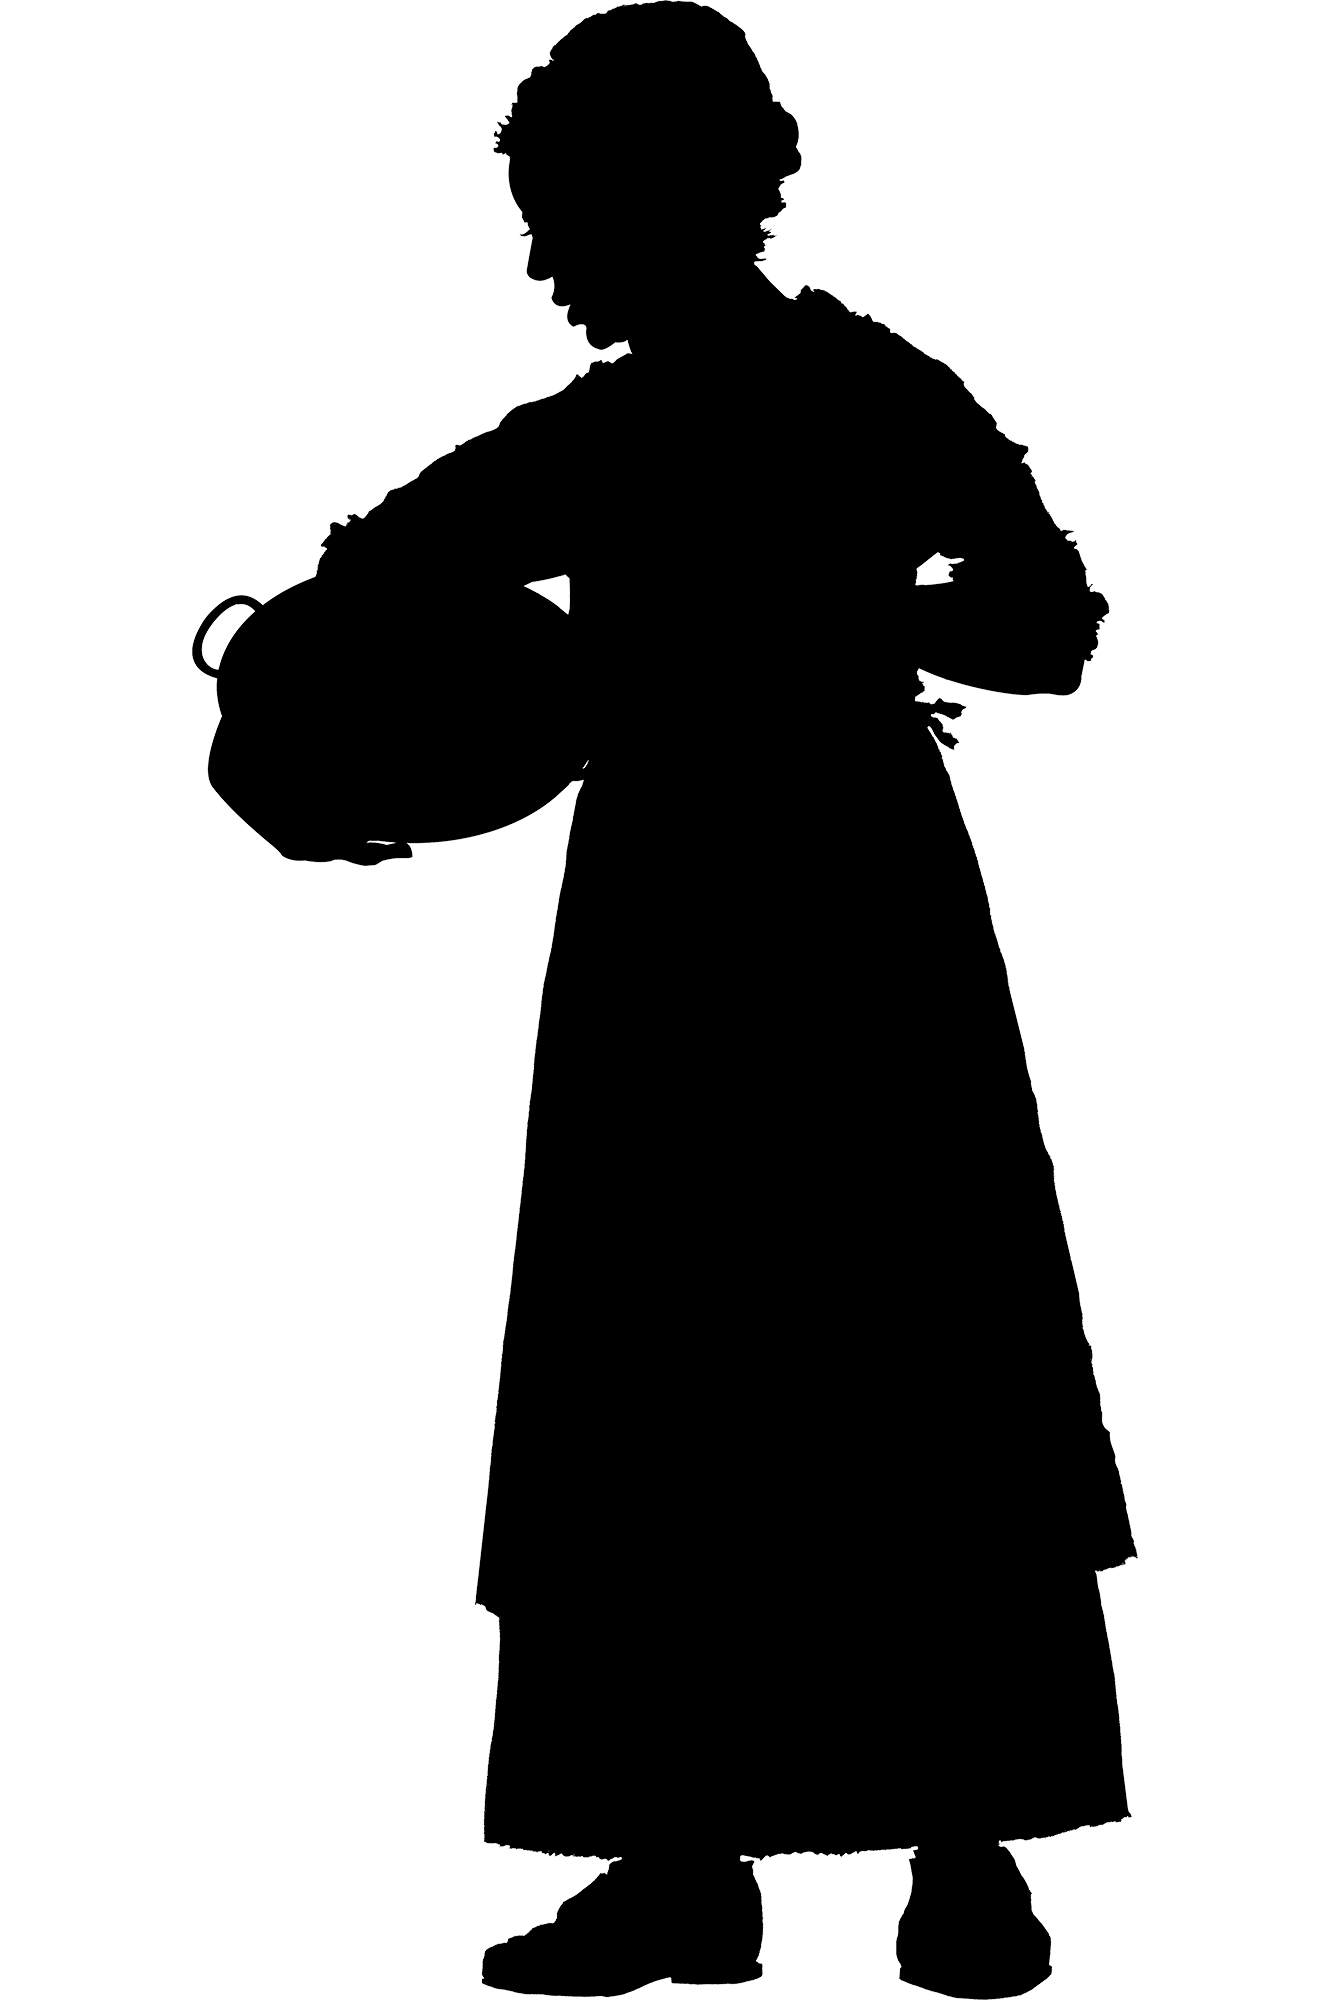 slave silhouette enslaved people at mount vernon george washington39s silhouette slave 1 4